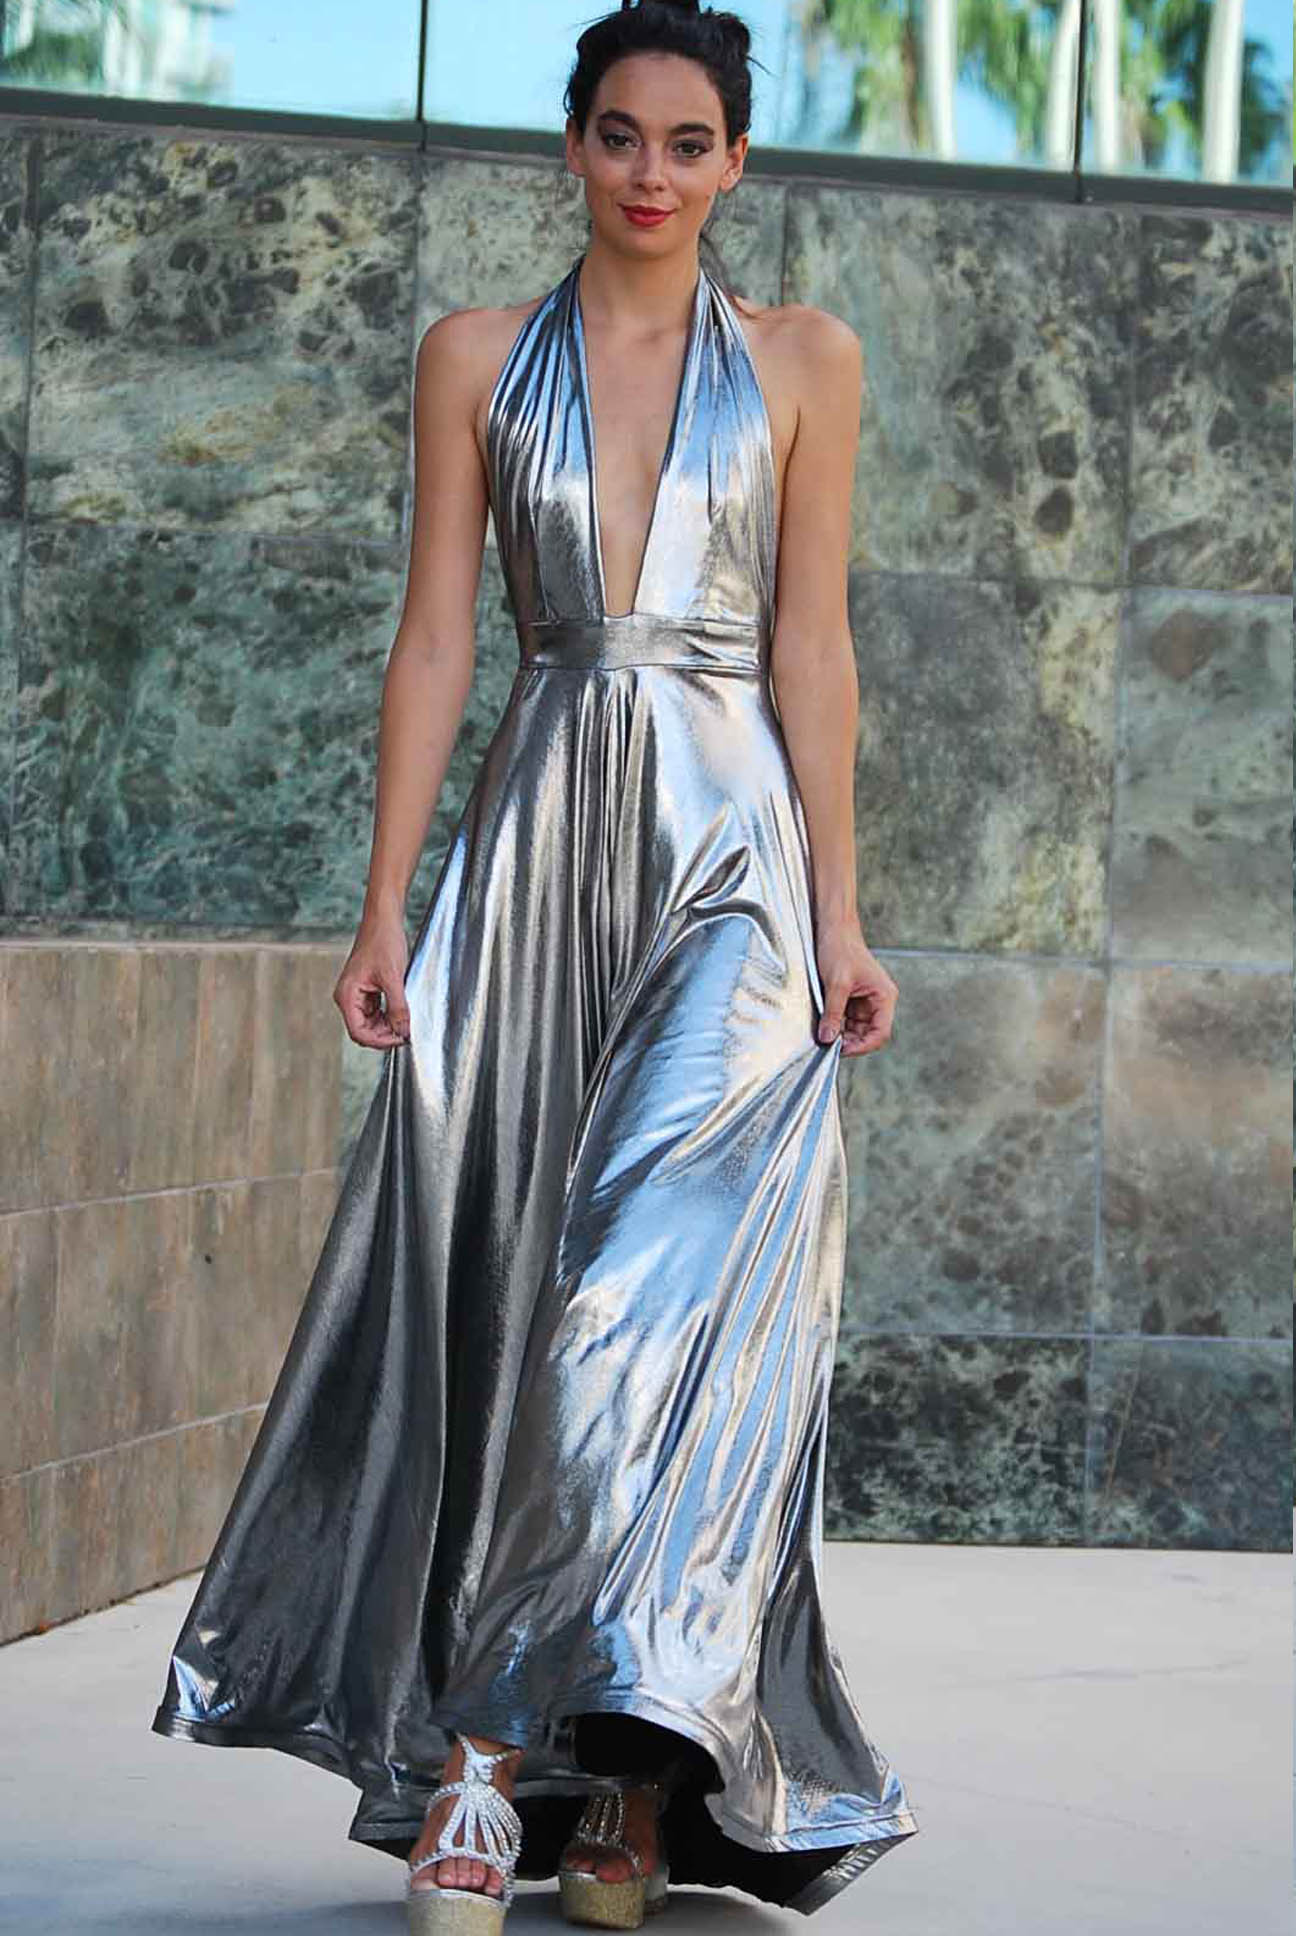 bodycondress_PartyDress_EveningGown2